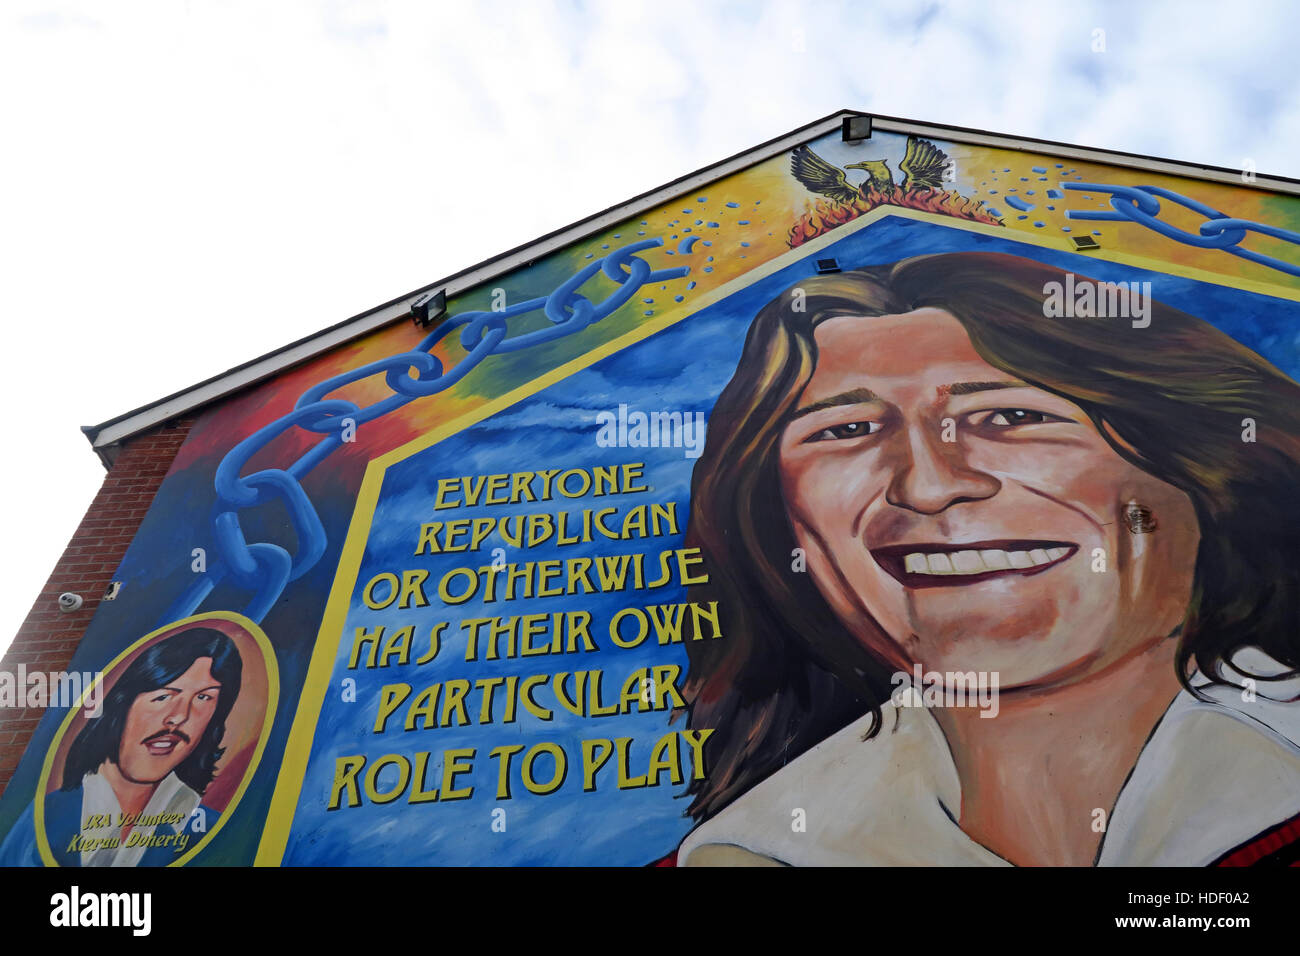 Road,painting,graffiti,resistance,IRA,peace,Northern Ireland,NI,UK,St,street,Eire,Irish,Republic,Irish Republic,conflict,Irish Republican Army,Political Change,Bobby,Sands,Everyone,in,a,revolution,smile,smiling,Bobby Sands,Everyone,in,a,revolution,has,their,part,to,play,GoTonySmith,@HotpixUK,Tony,Smith,UK,GB,Great,Britain,United,Kingdom,Irish,British,Ireland,problem,with,problem with,issue with,NI,Northern,Northern Ireland,Belfast,City,Centre,Art,Artists,the,troubles,The Troubles,Good Friday Agreement,Peace,honour,painting,wall,walls,tribute,republicanism,Fight,Justice,West,Beal,feirste,martyrs,social,tour,tourism,tourists,urban,six,counties,6,backdrop,county,Antrim,occupation,good,Friday,agreement,peace,reconciliation,IRA,terror,terrorists,genocide,catholic,community,catholics,Buy Pictures of,Buy Images Of,Images of,Stock Images,Tony Smith,United Kingdom,Great Britain,British Isles,republican cause,Belfast Catholic Community